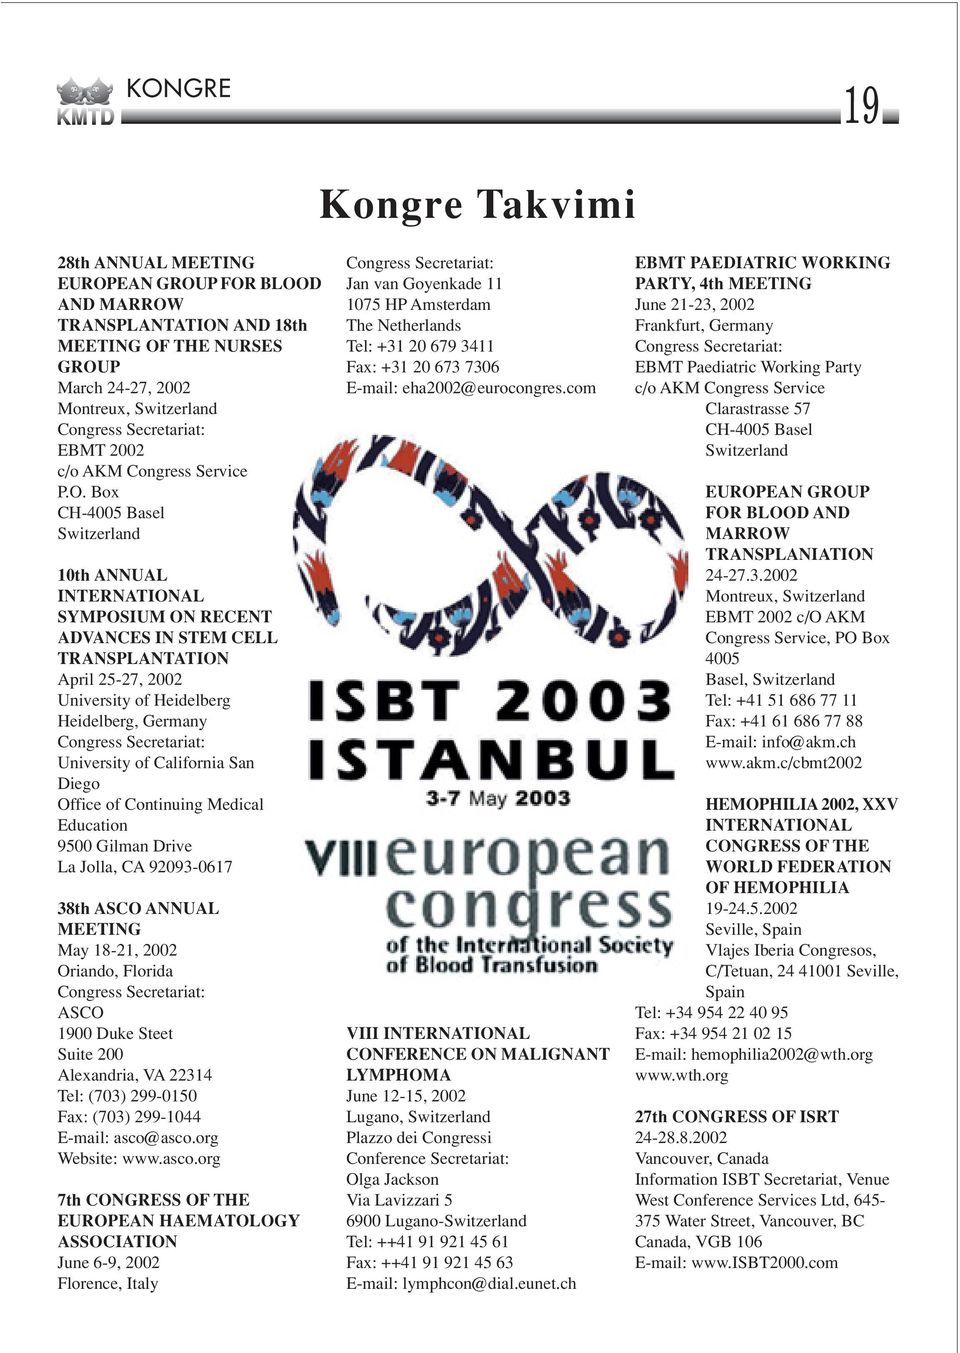 Box CH-4005 Basel Switzerland 10th ANNUAL INTERNATIONAL SYMPOSIUM ON RECENT ADVANCES IN STEM CELL TRANSPLANTATION April 25-27, 2002 University of Heidelberg Heidelberg, Germany Congress Secretariat: